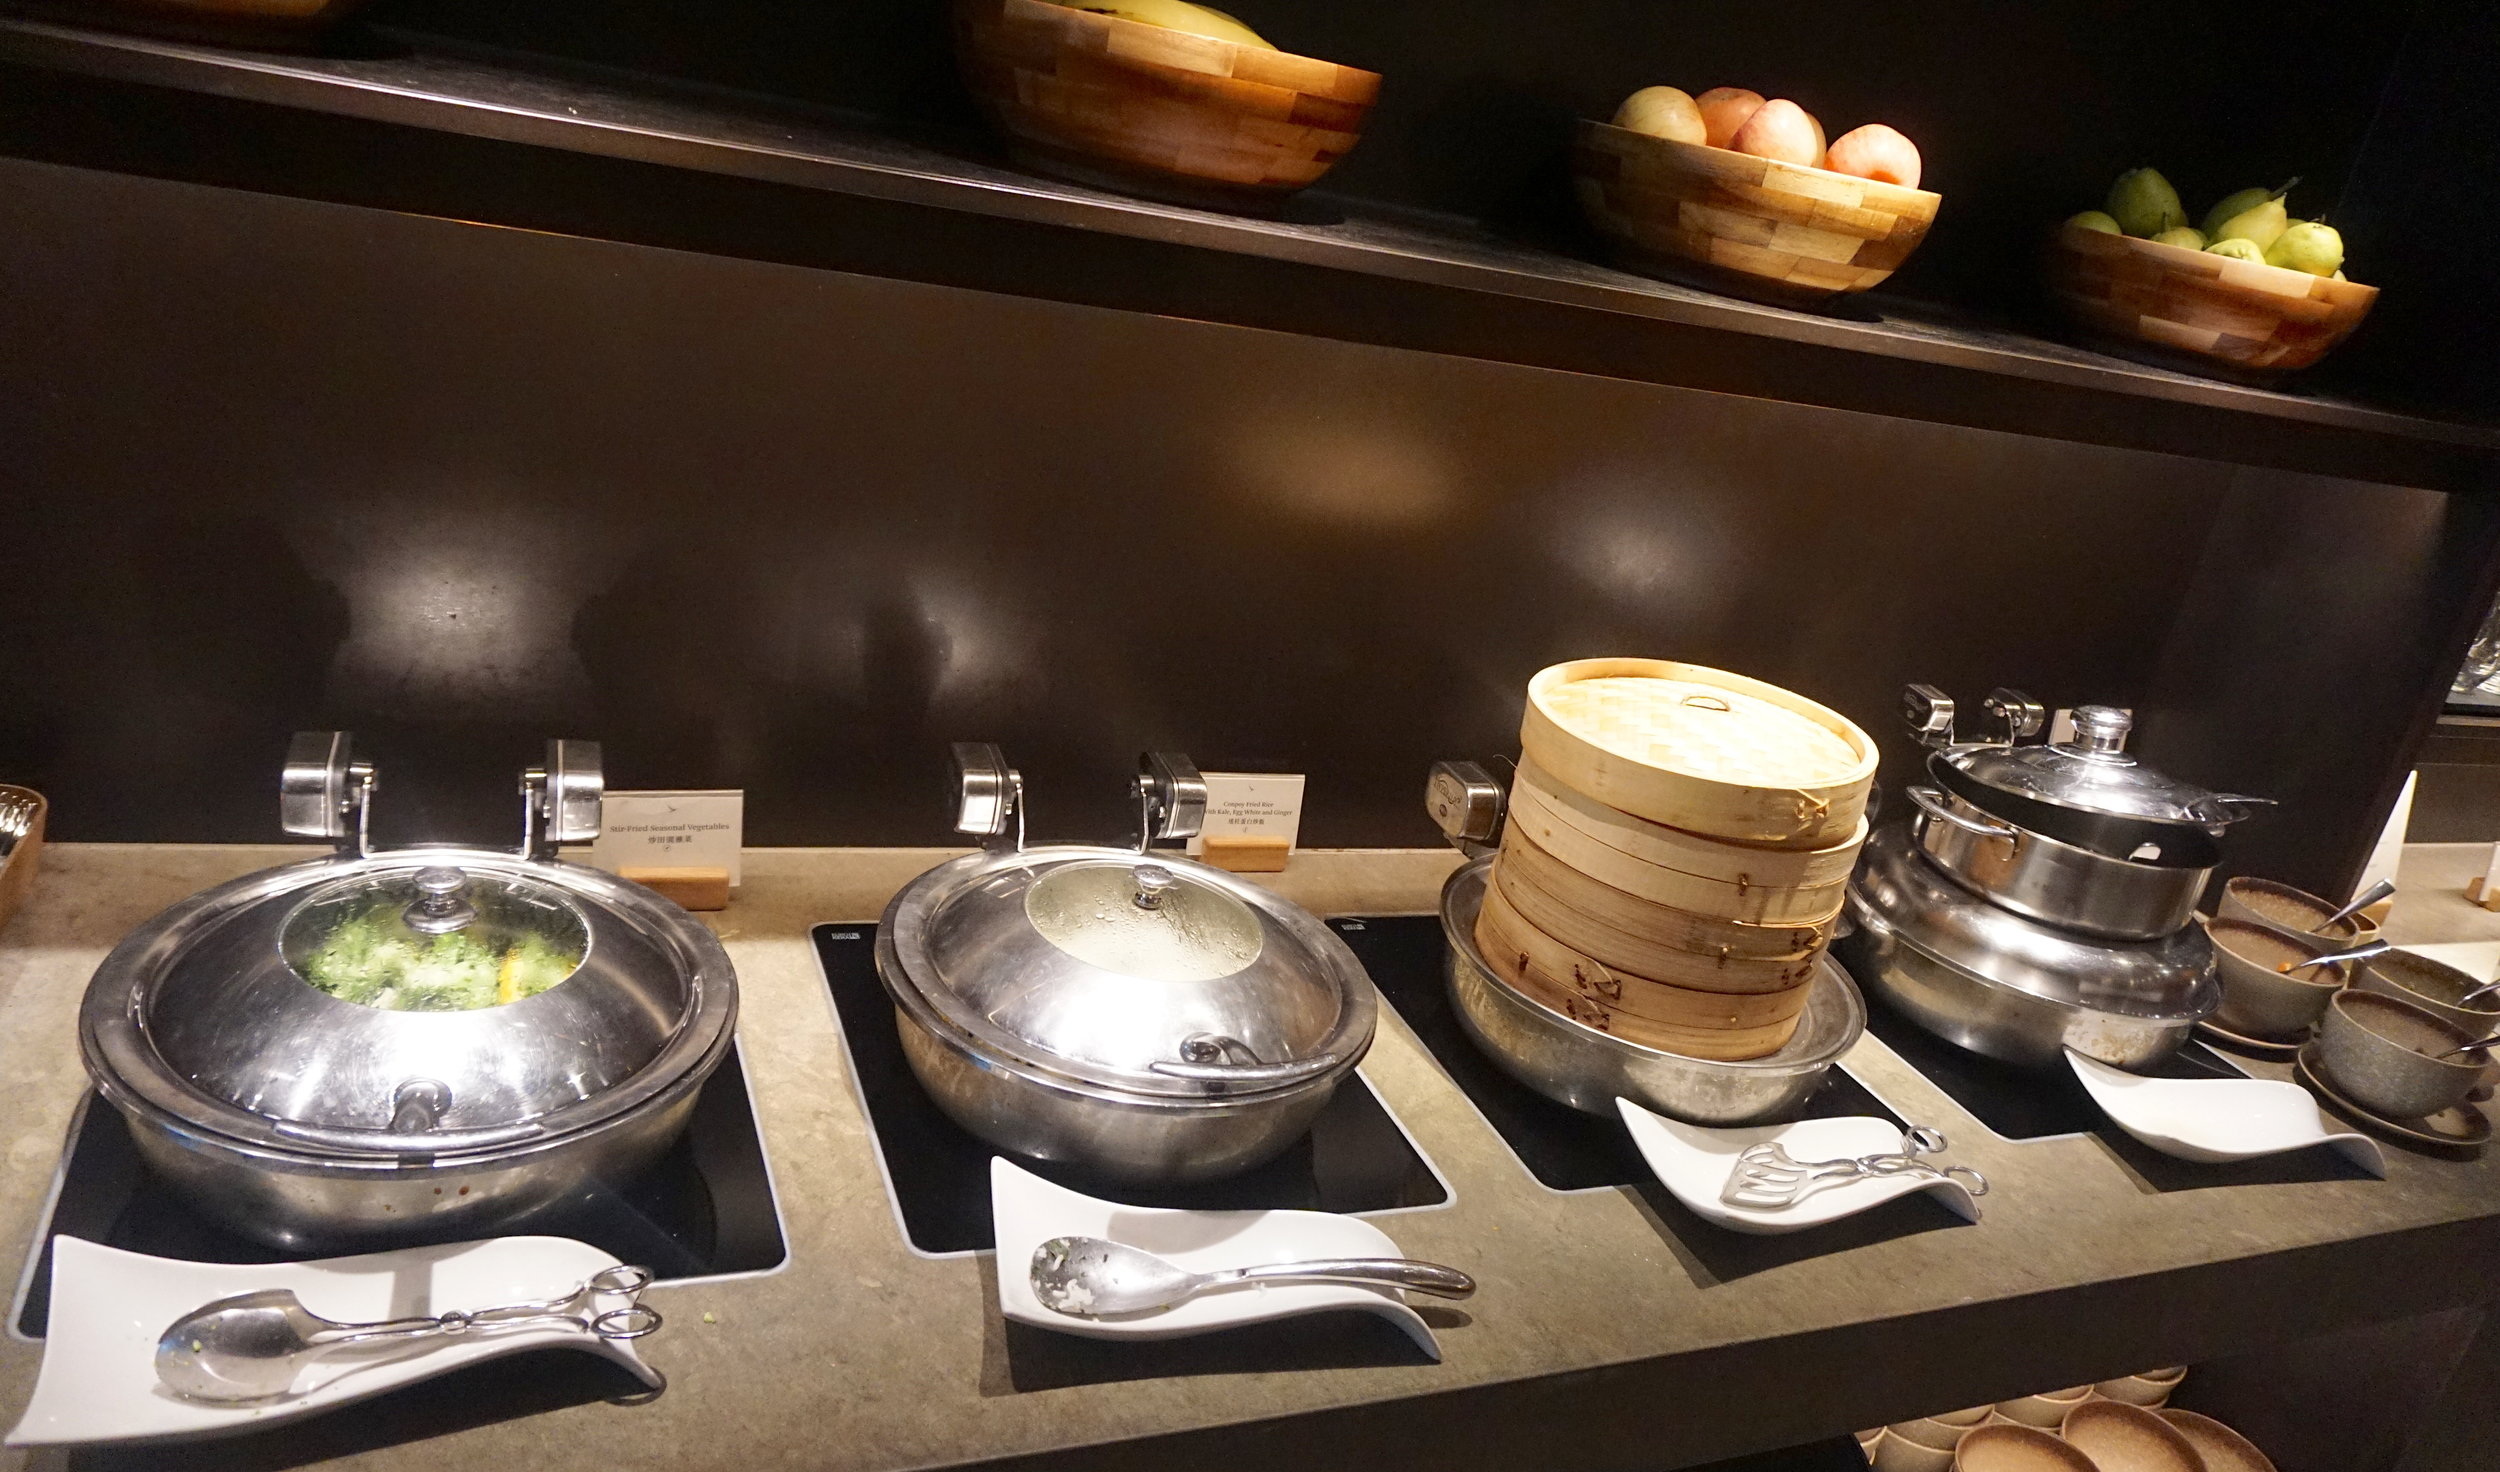 Hot dishes including rice, dim sum, congee and vegetables